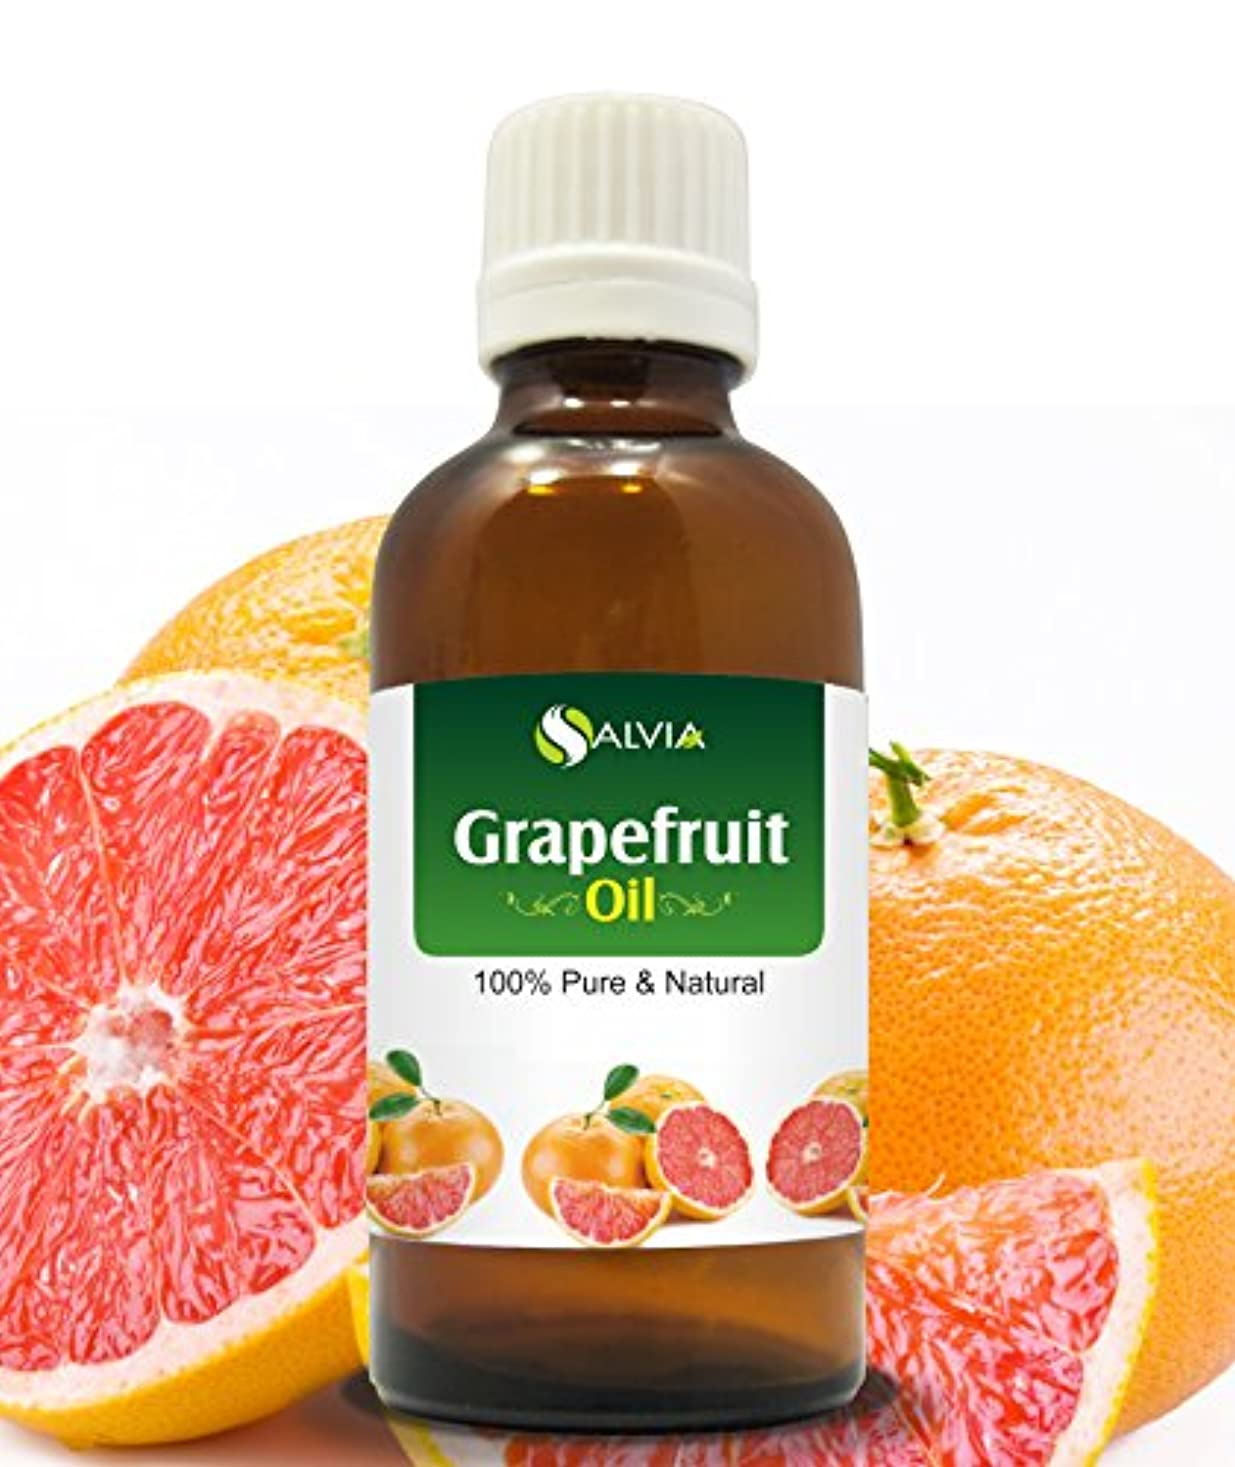 アボート転用さようならGRAPEFRUIT OIL 100% NATURAL PURE UNDILUTED UNCUT ESSENTIAL OIL 30ML …